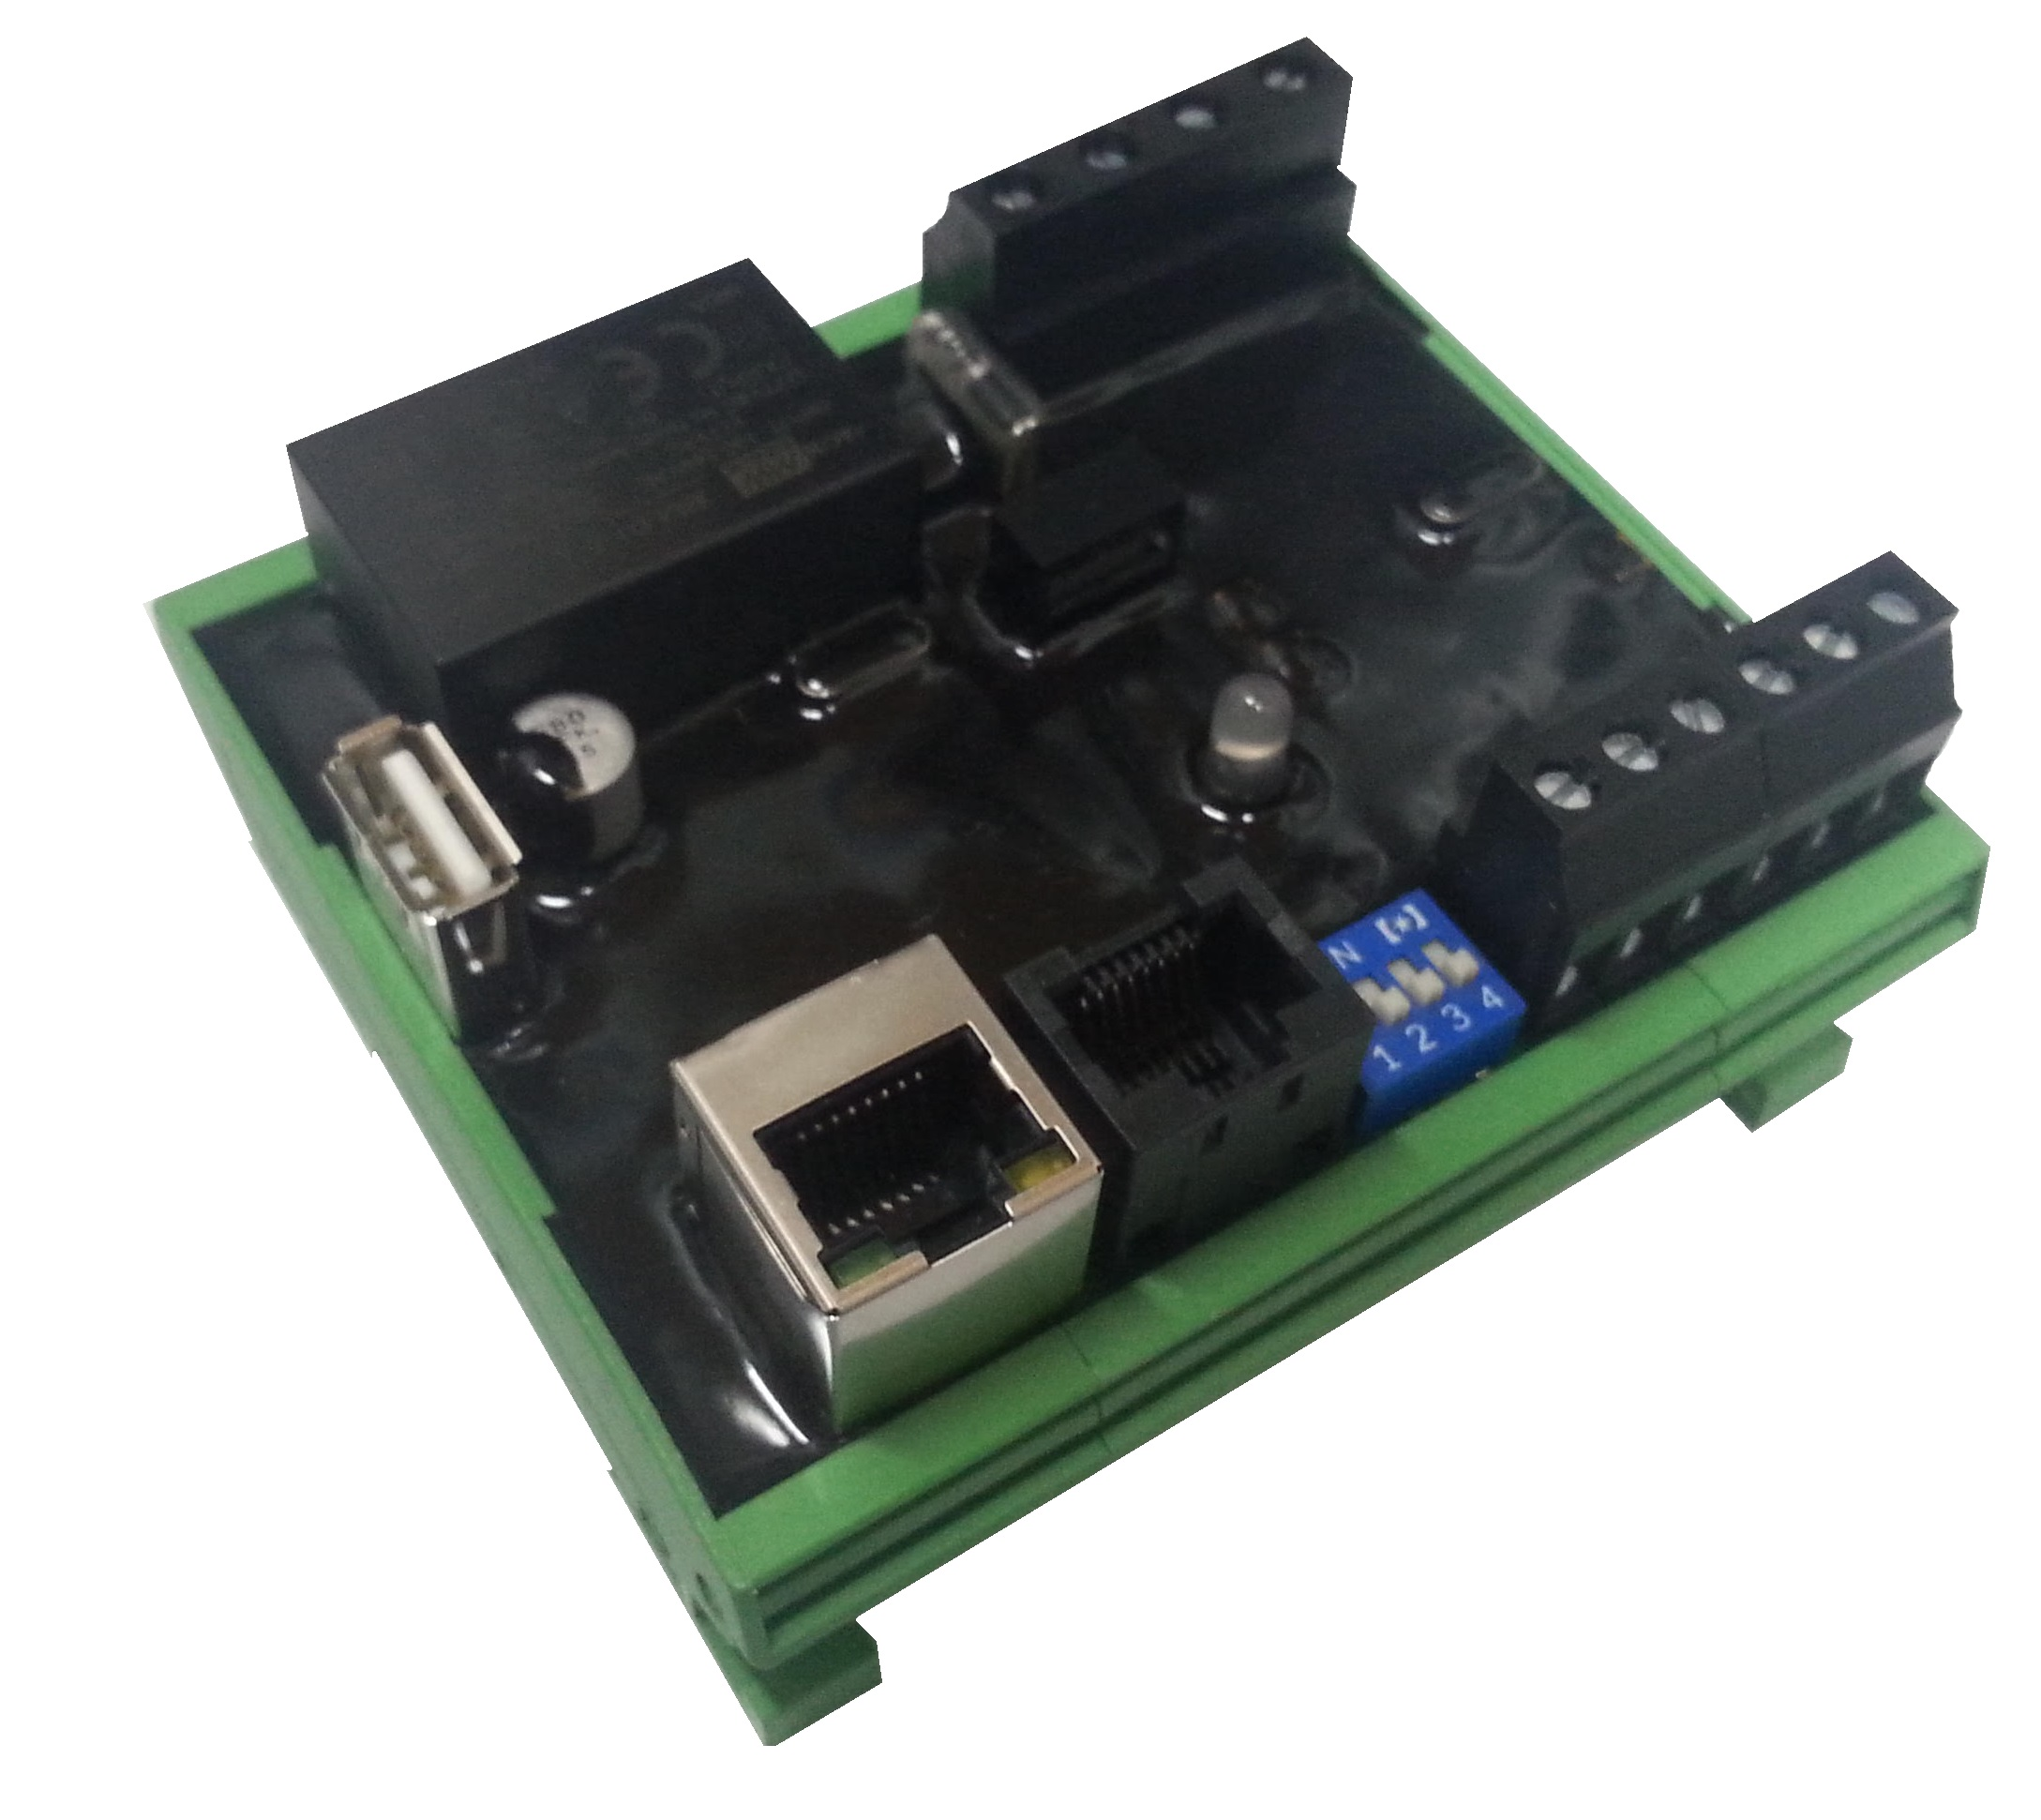 ZERO EXPORT controller » Easy connecting Diesel with PV